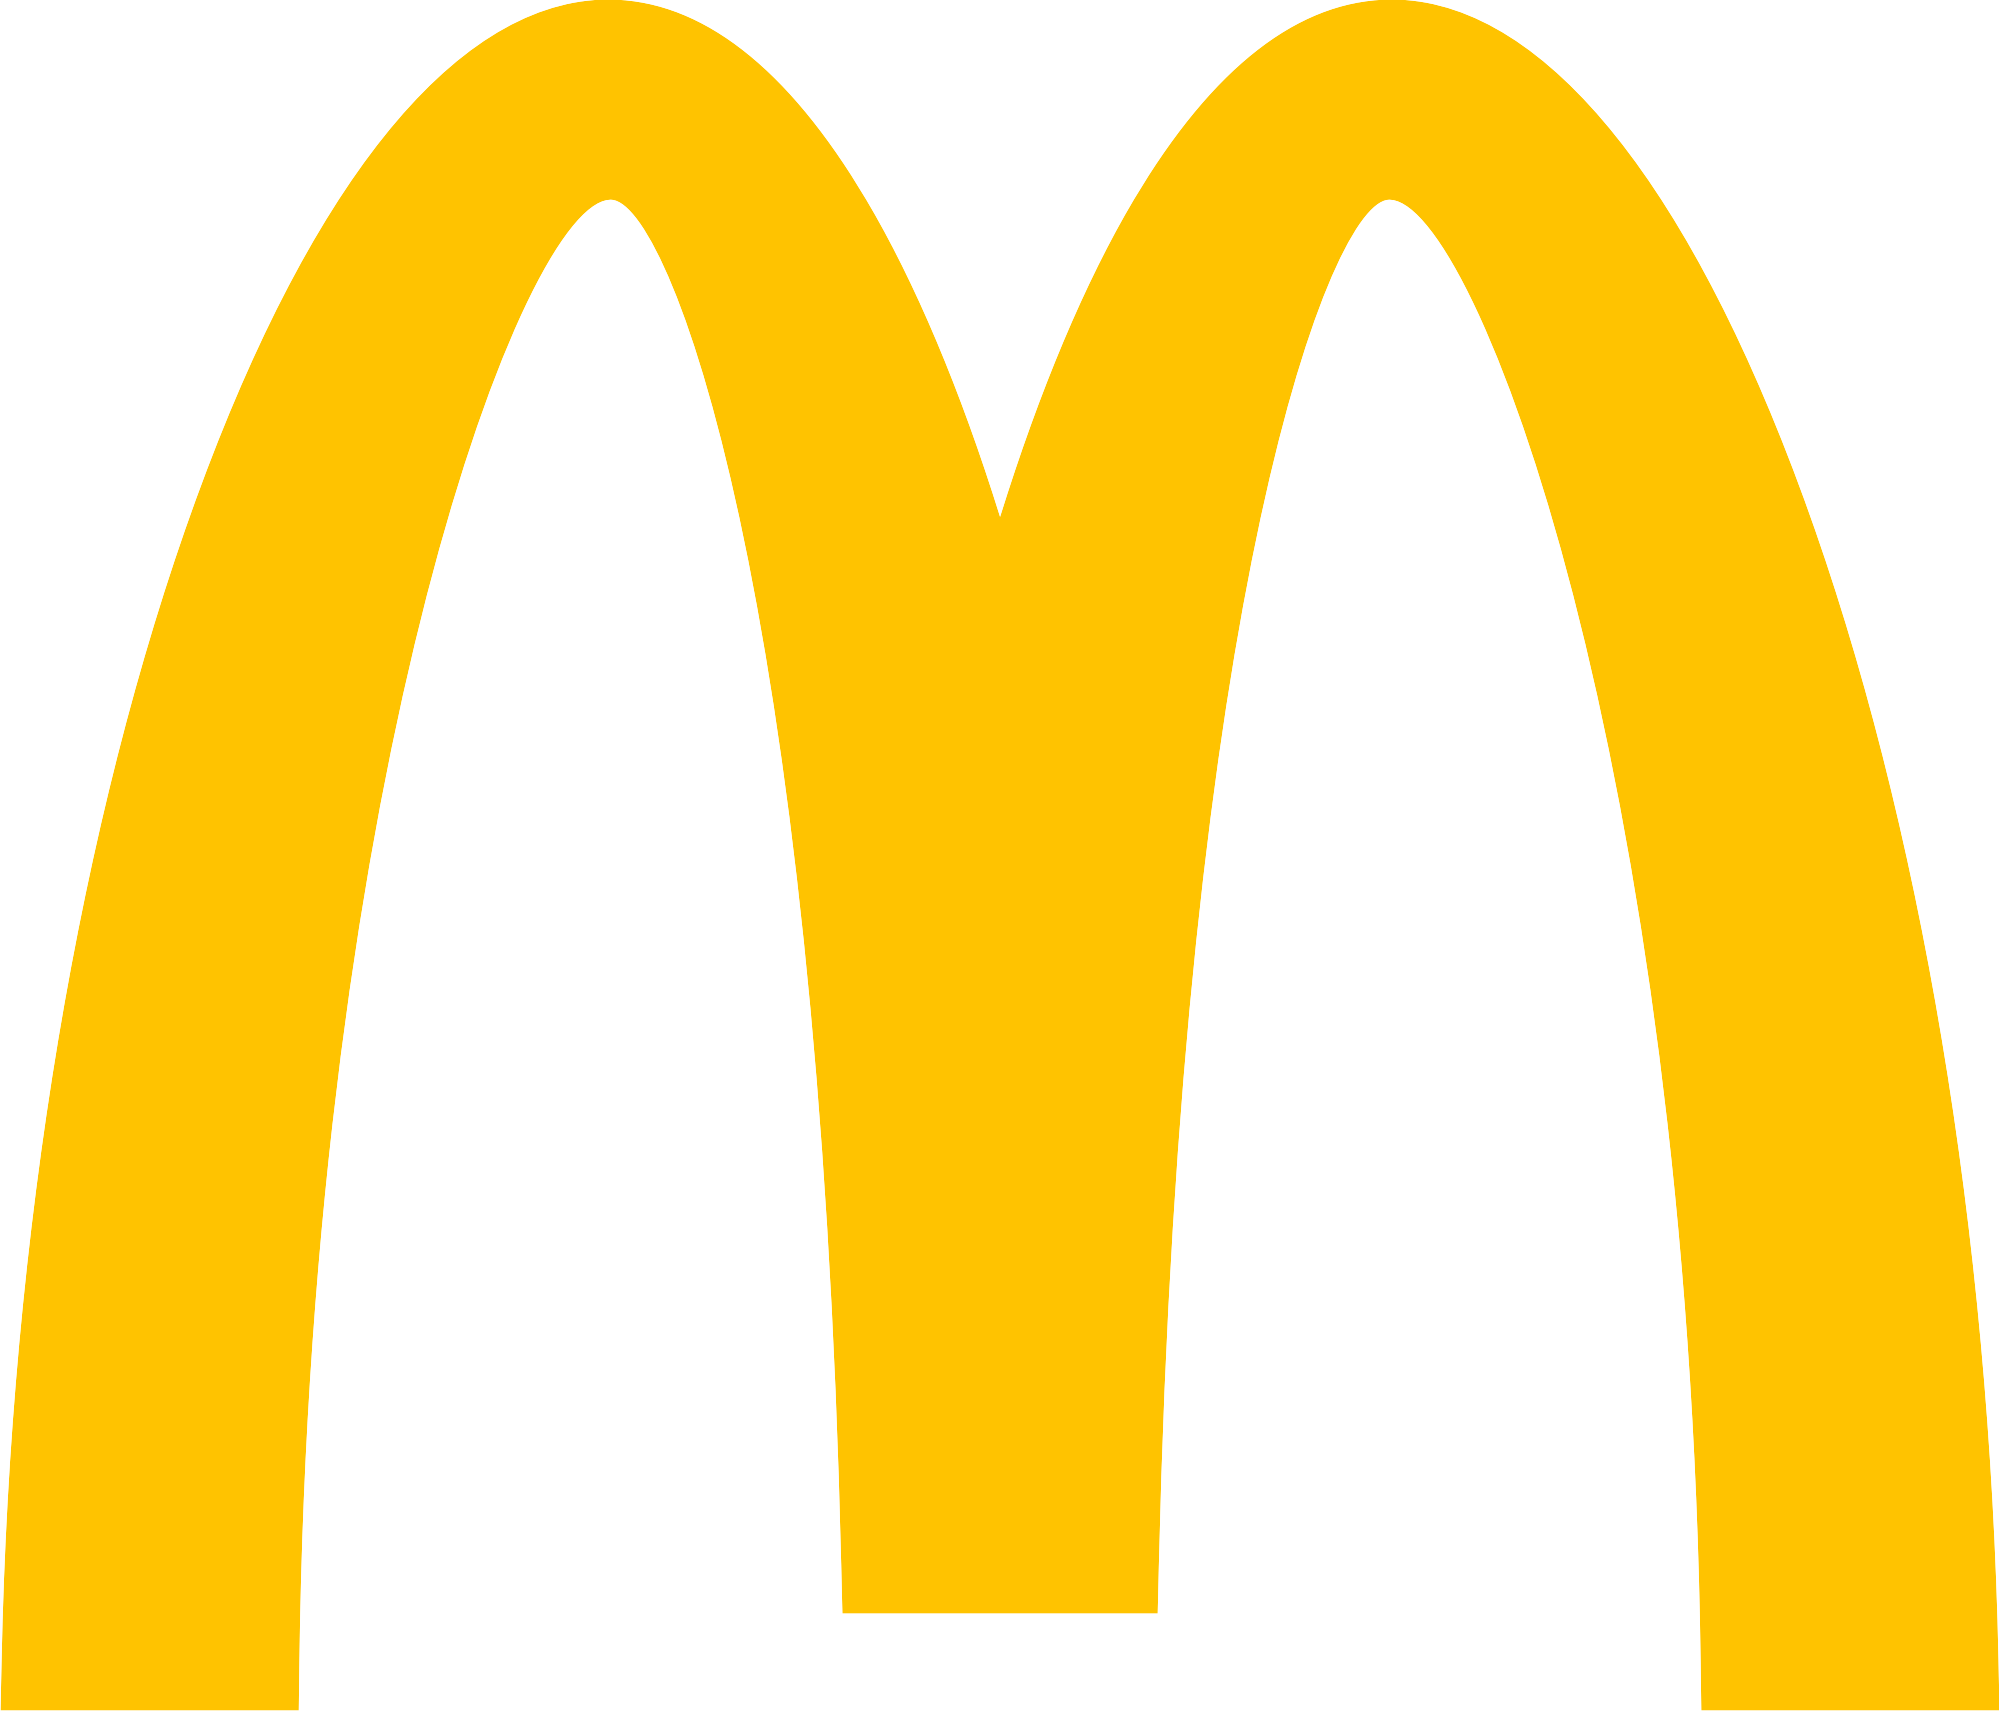 1999x1711 Mcdonald's Logo Png Images Free Download